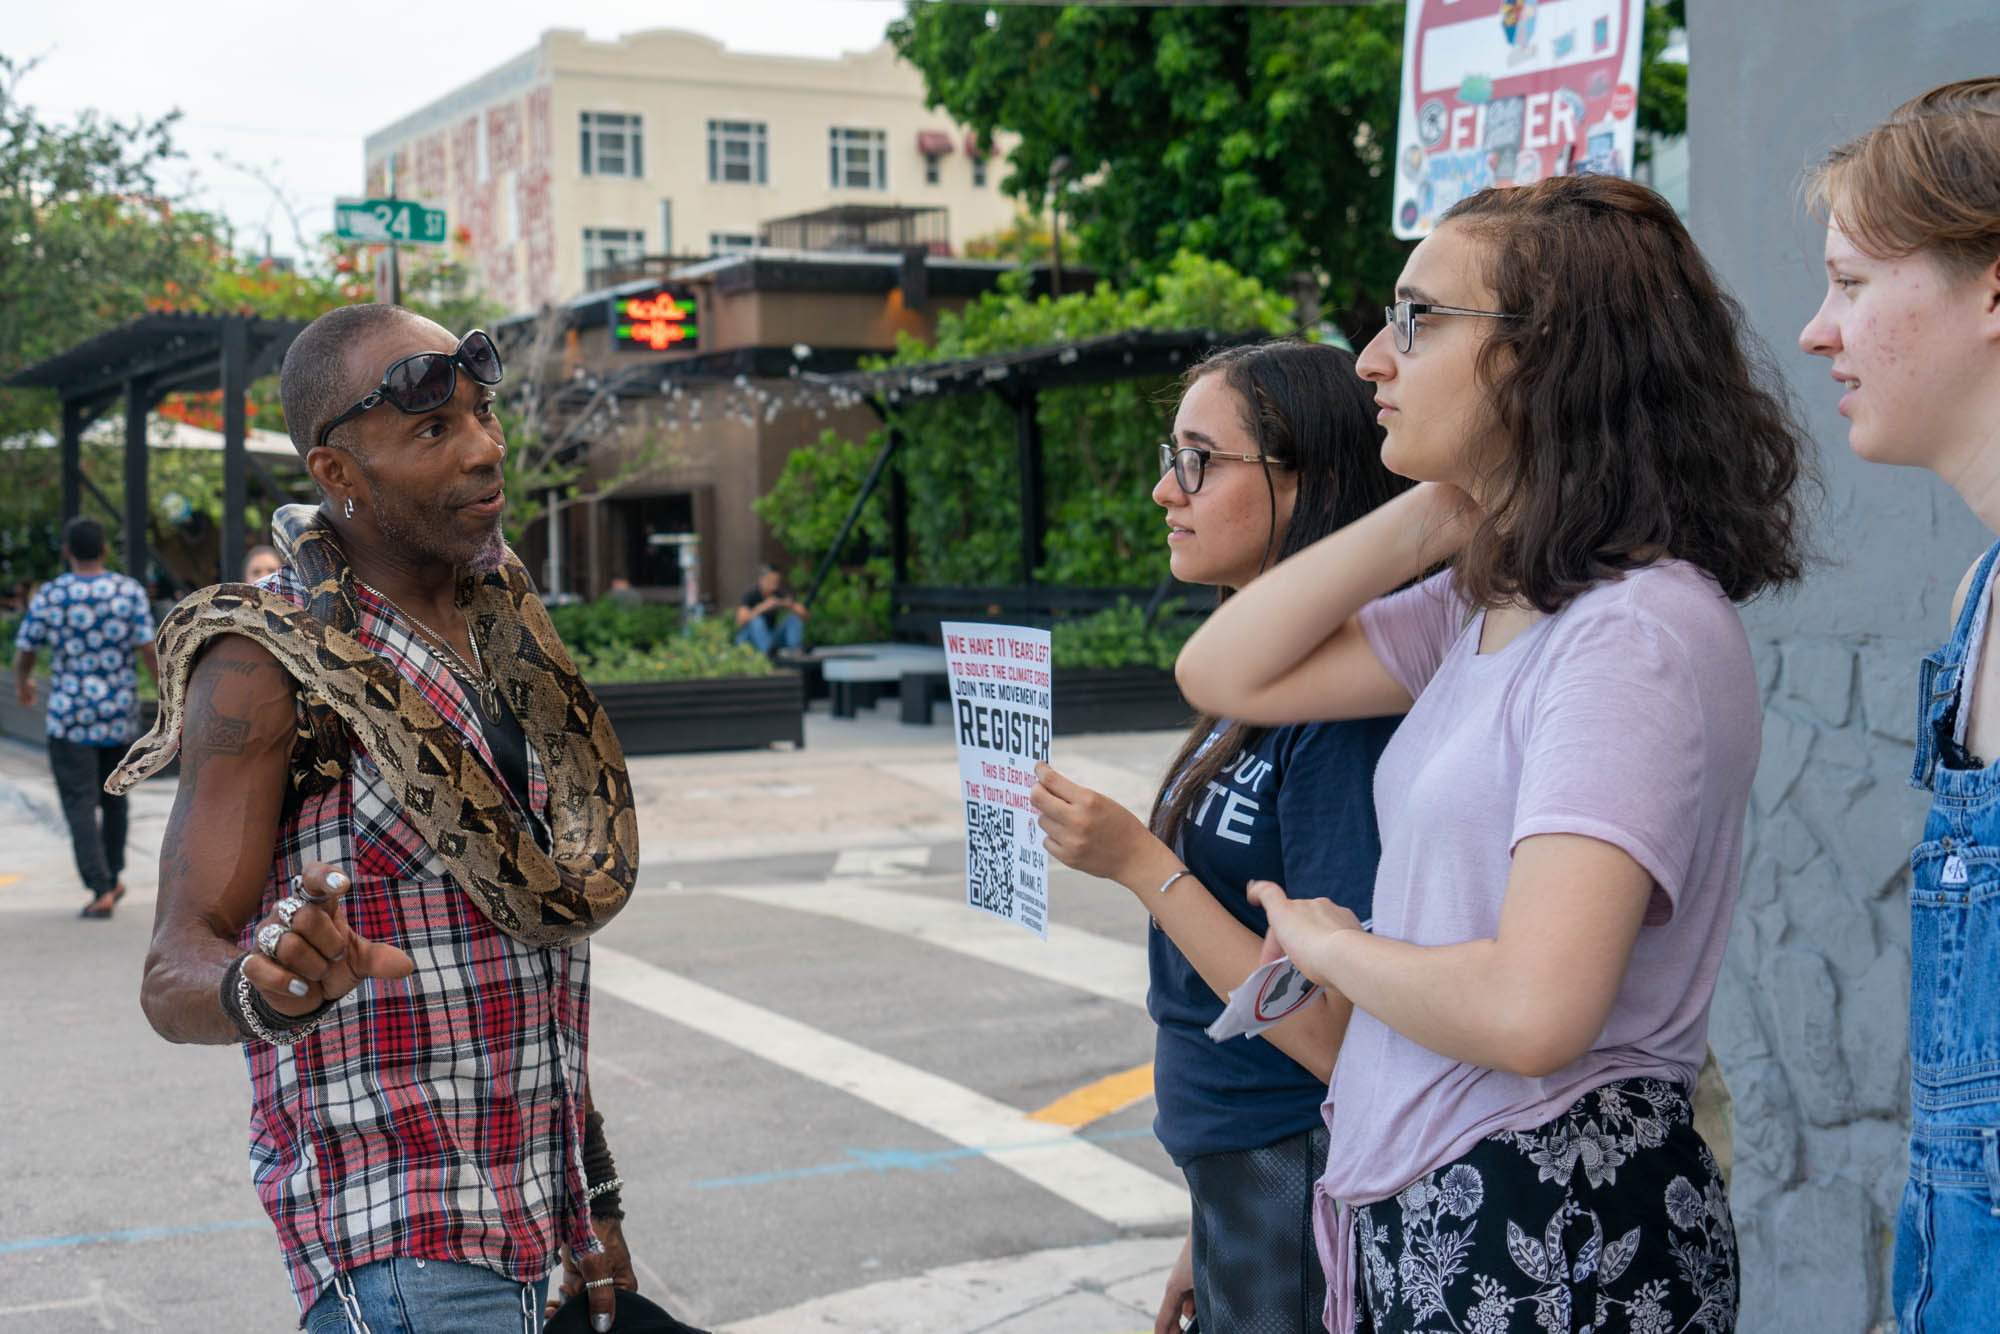 "Ray ""Fangdaddy"" Henry, a street performer in Miami's Wynwood Walls district, learns about the Youth Climate Summit from Zero Hour activists (from left) Sohayla Eldeeb, Jamie Margolin and Kendall Kieras. (Jordan Laird/News21)"